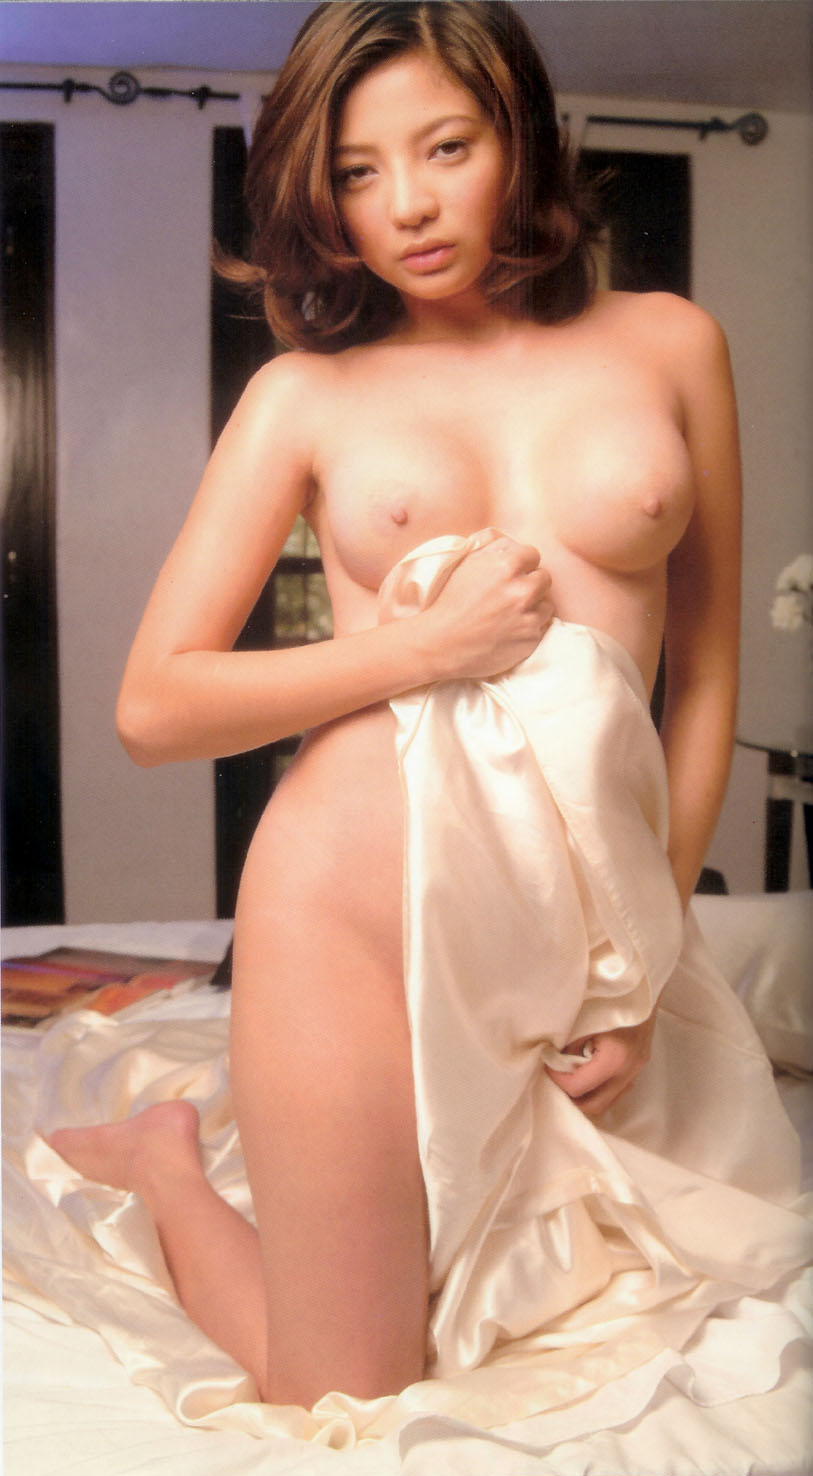 maui taylor totally naked photos 01